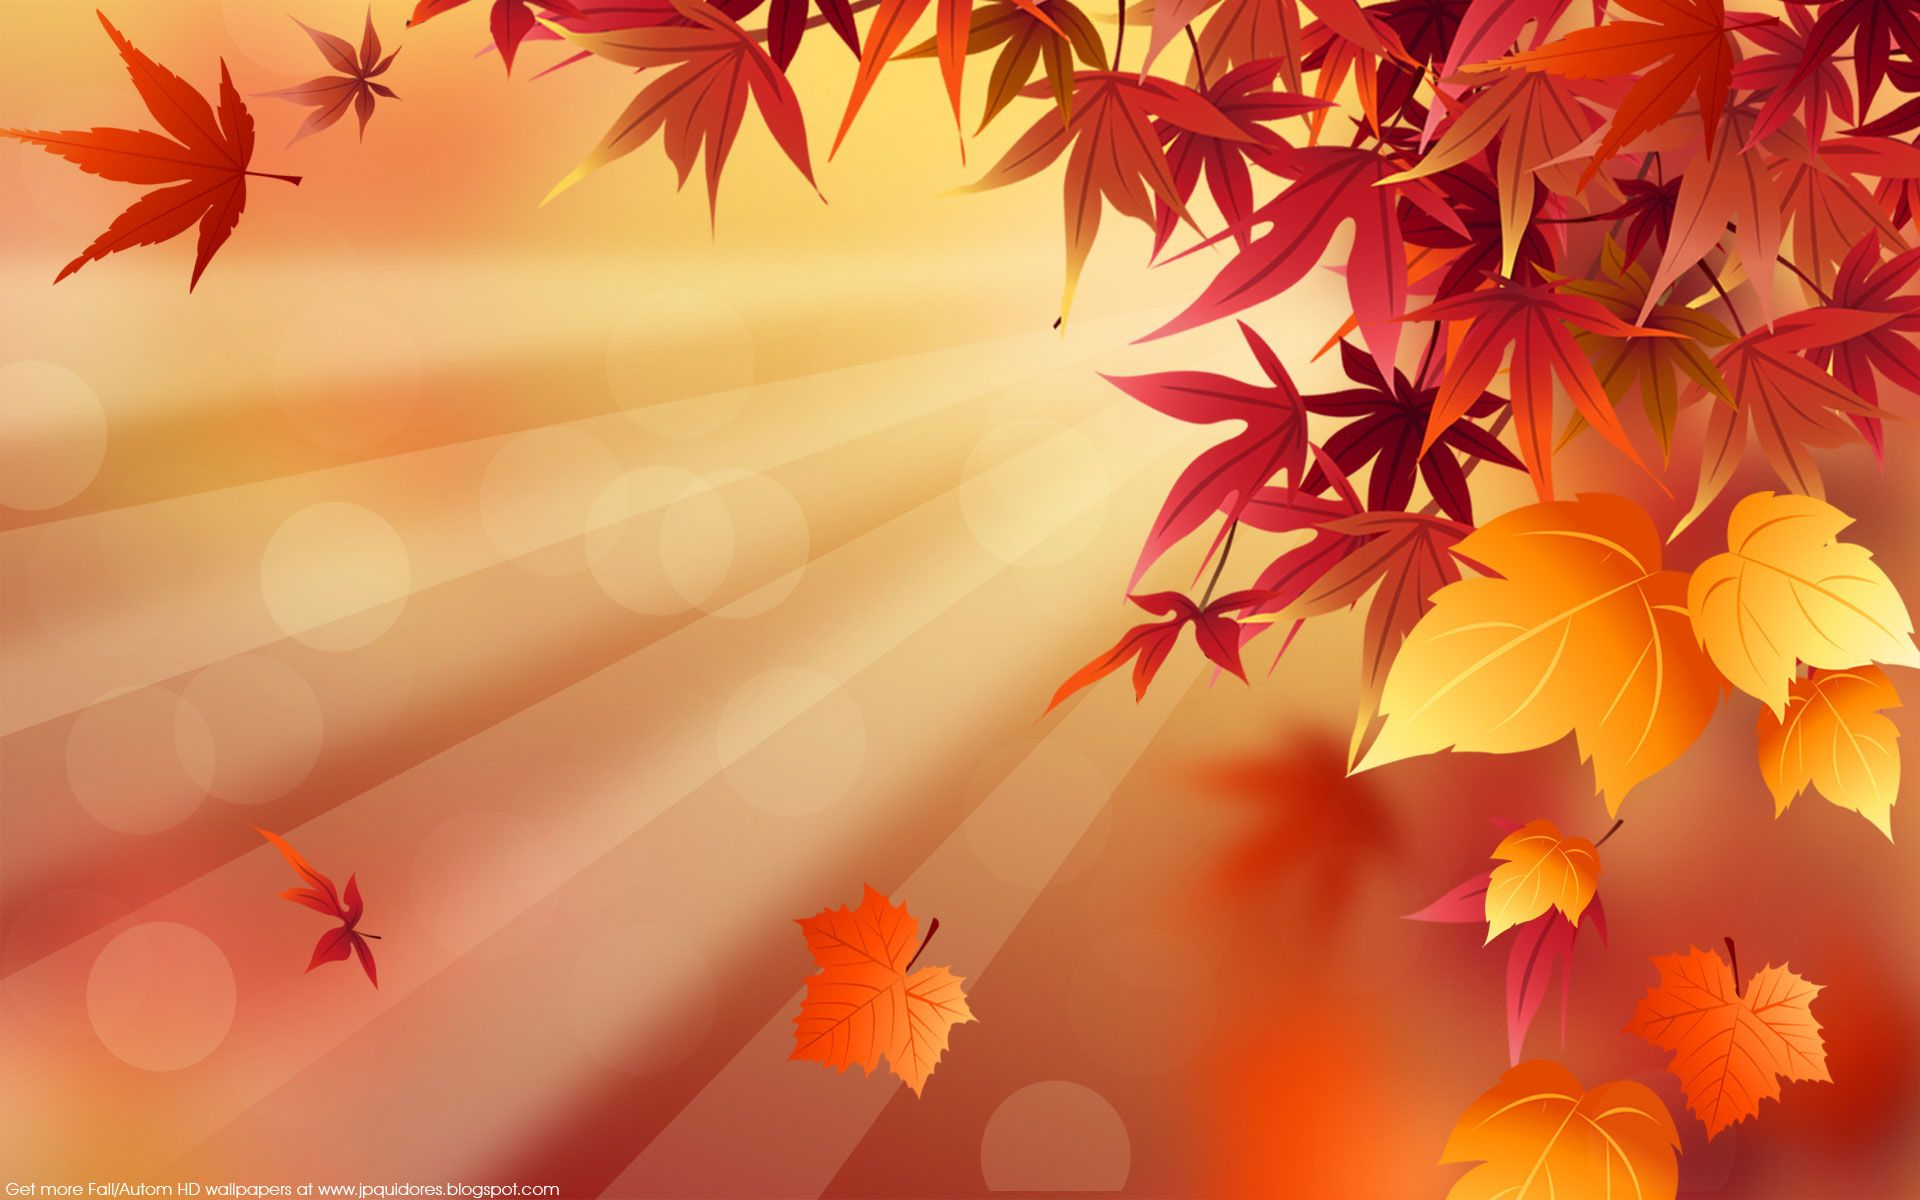 http:// Autumn Photos | 2011 Autumn HD Wallpapers to Download ...